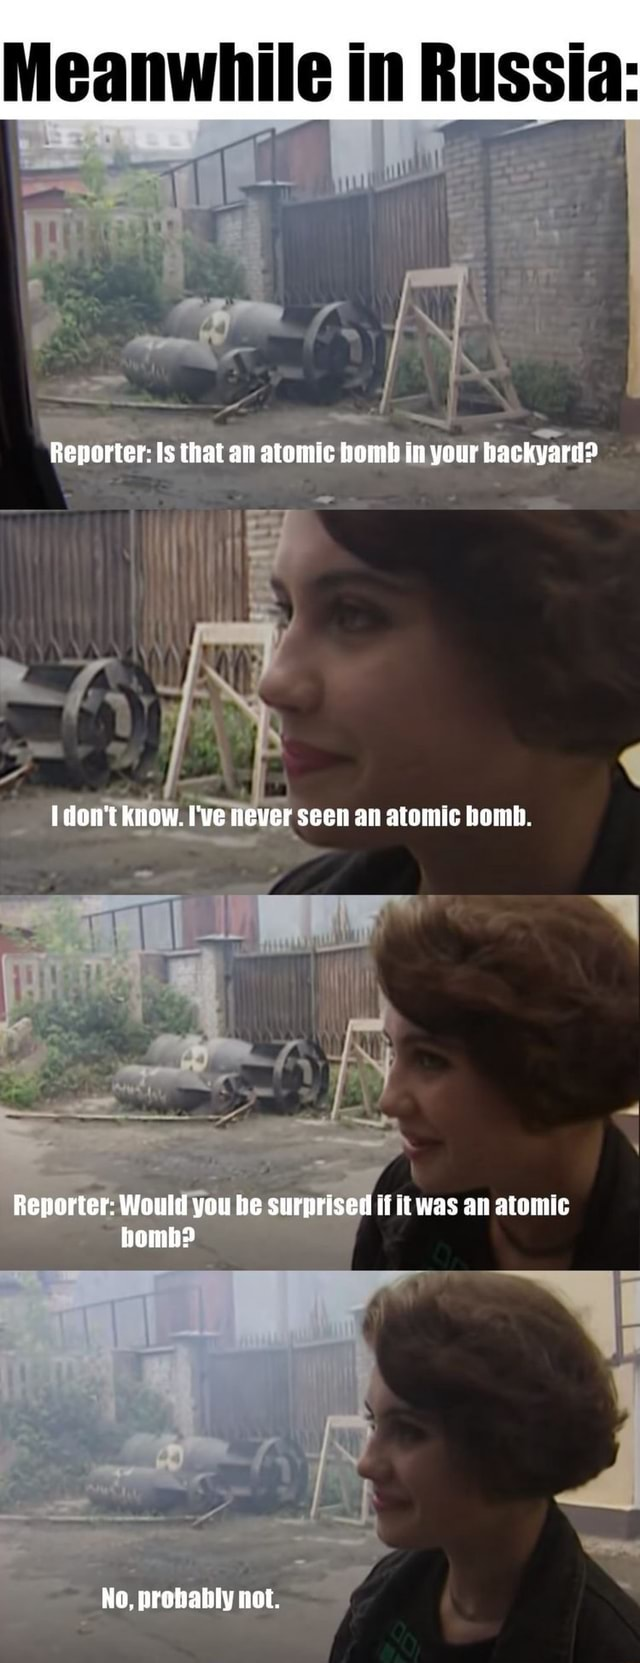 Meanwhile in Russia Renorter Is that an atomic bomb in your backyard  do not know. I've never seen an atomic bomb. Reporter Would you be surprised if WAS an atomic homh No, probably not memes